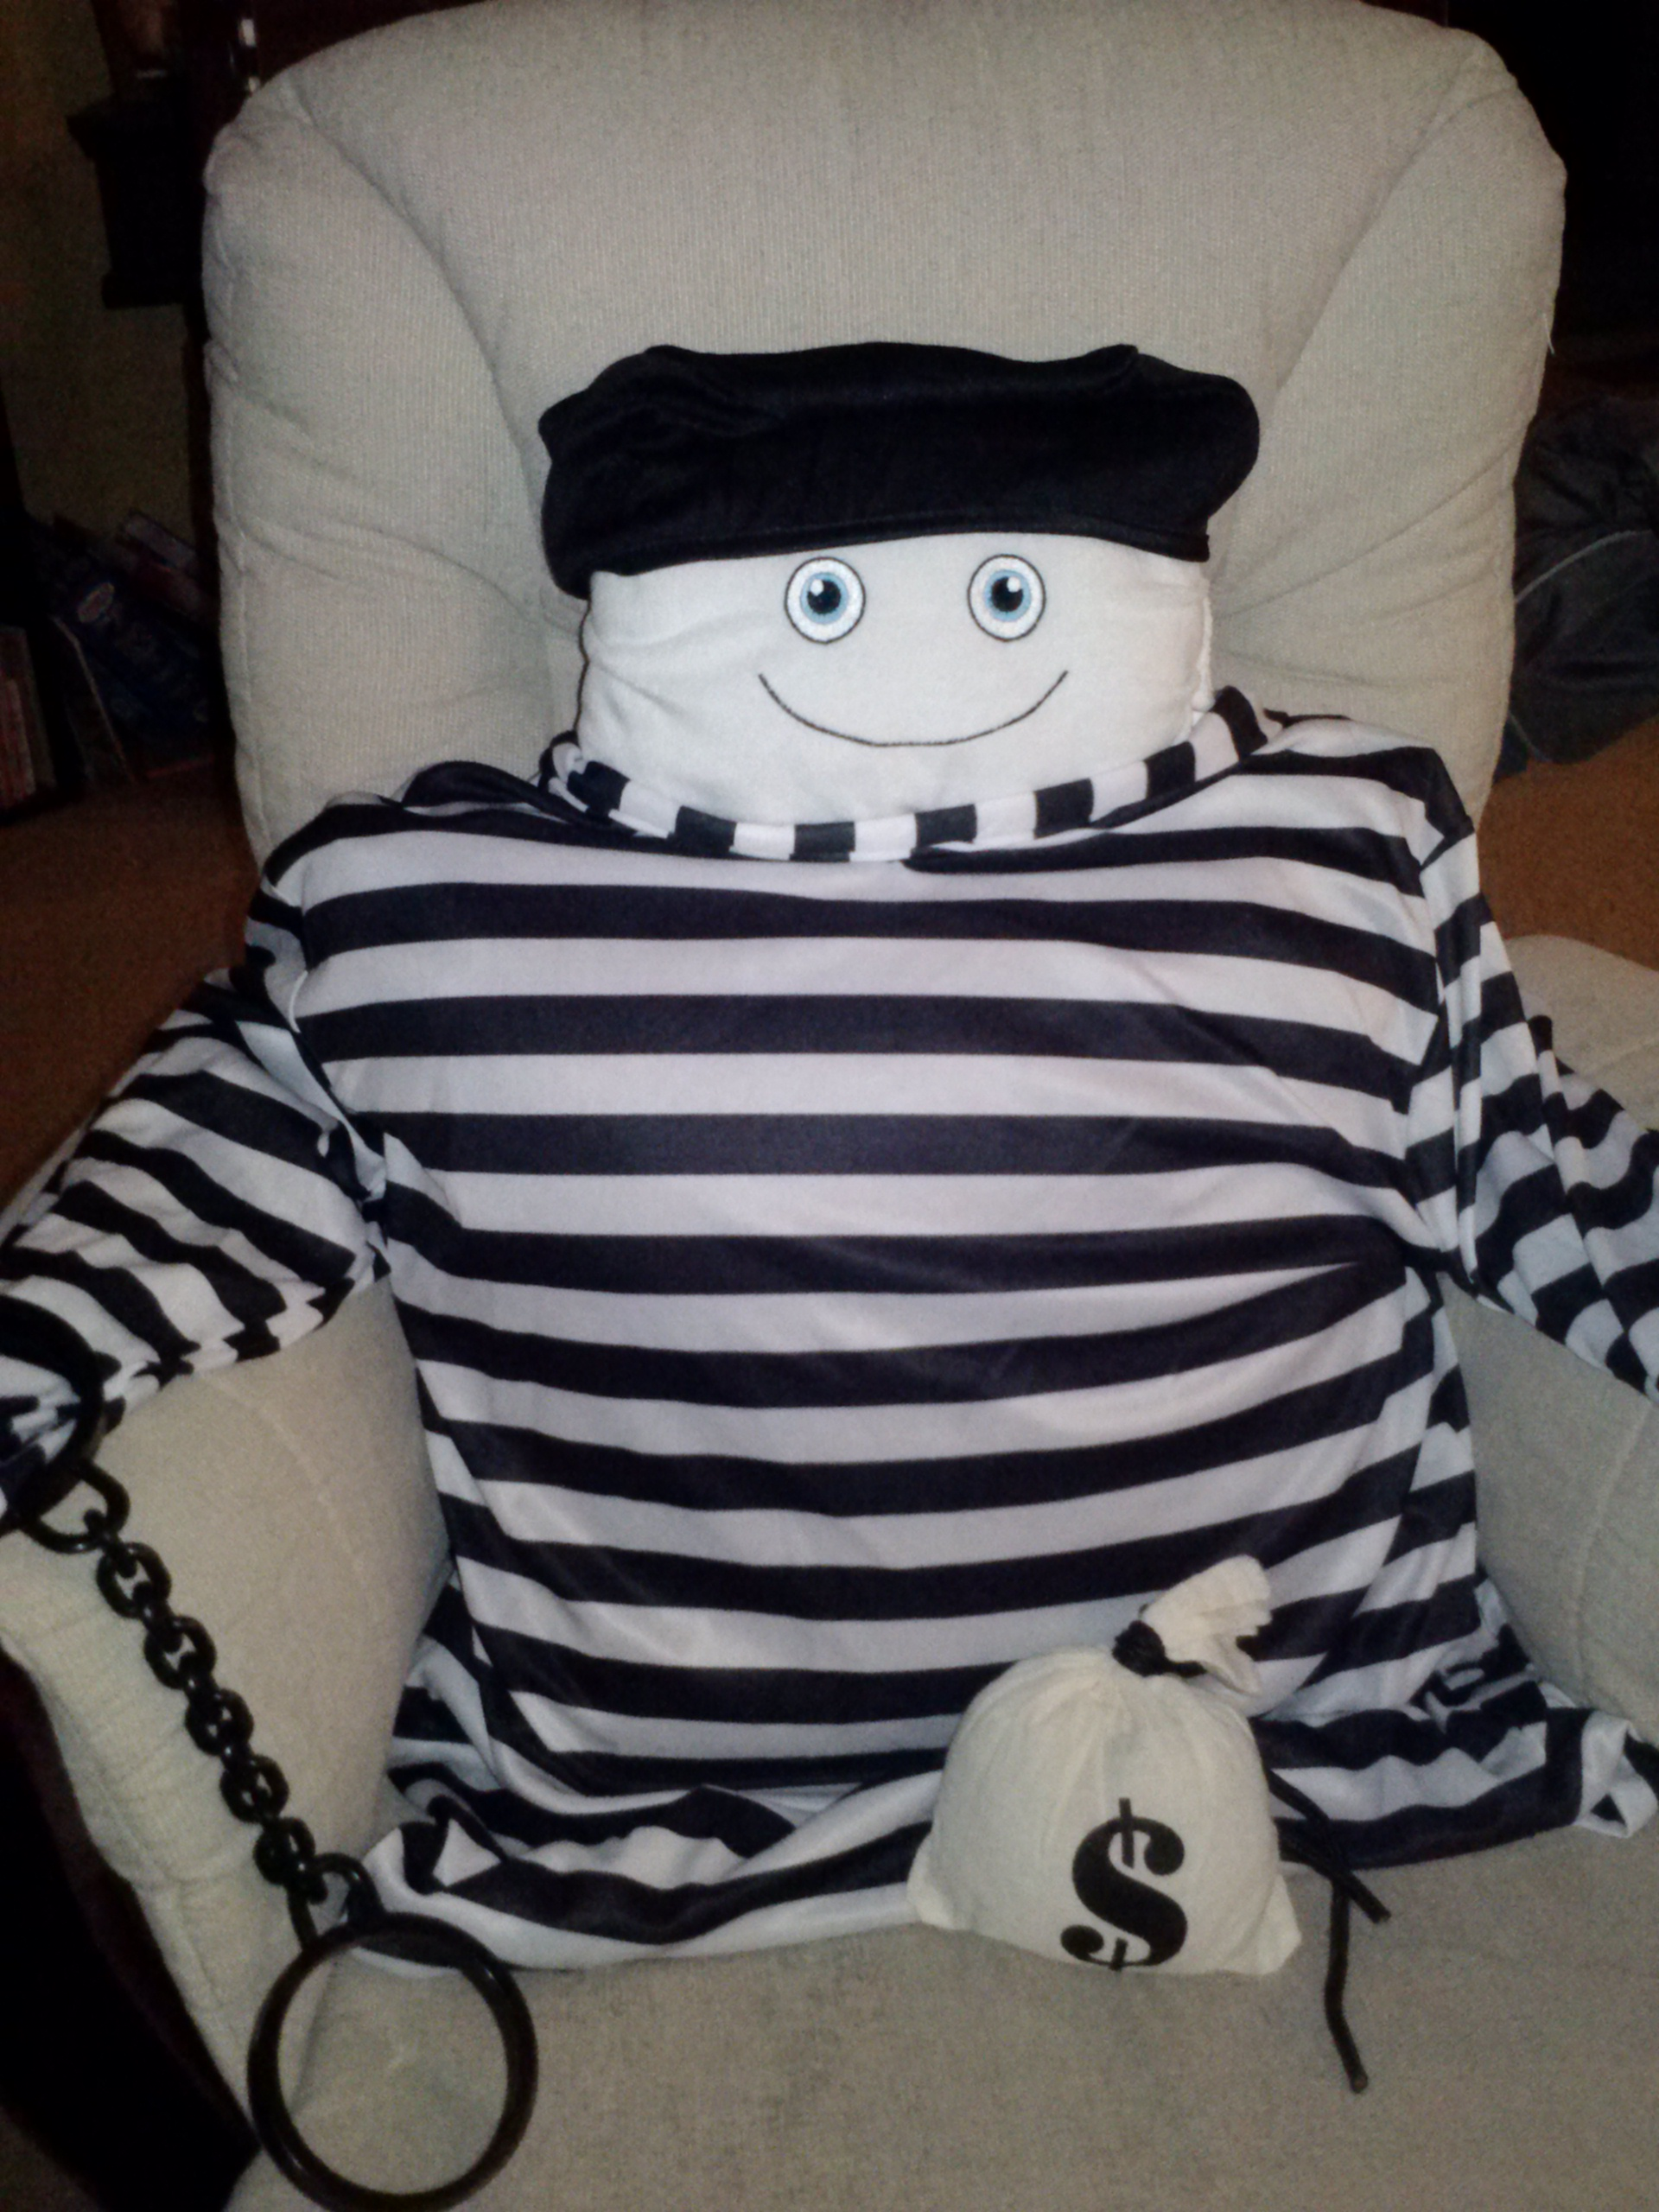 Dress-up time with McStuffy O'Fluffigan: He's a robber!